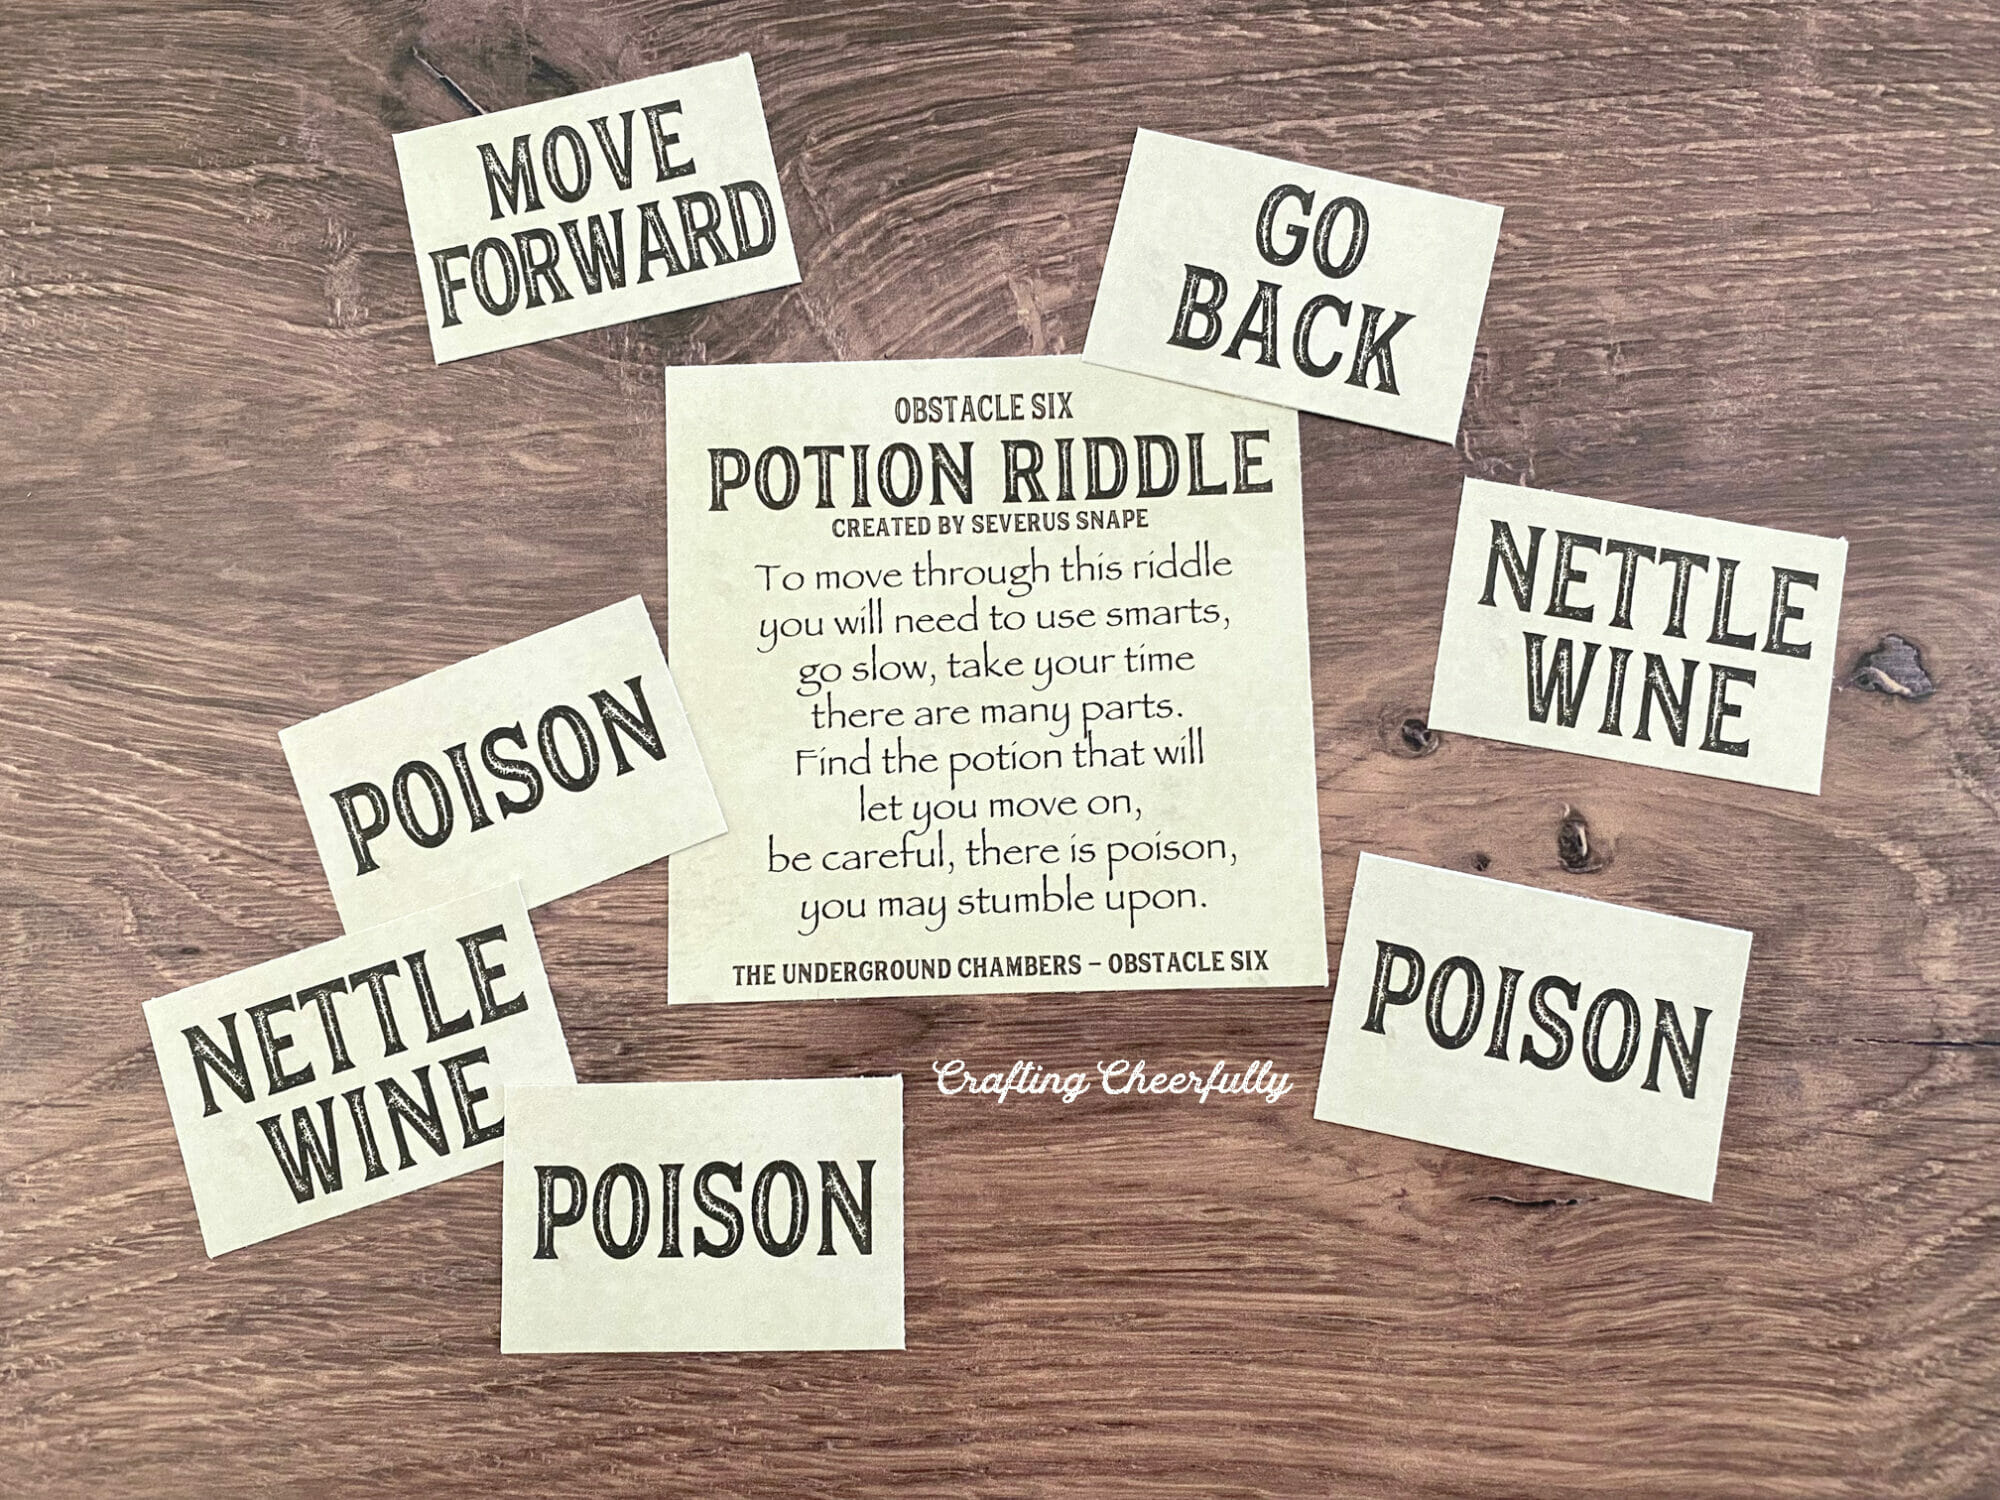 Obstacle six card lays on a table with smaller cards that read Poison, Nettle Wine and more.